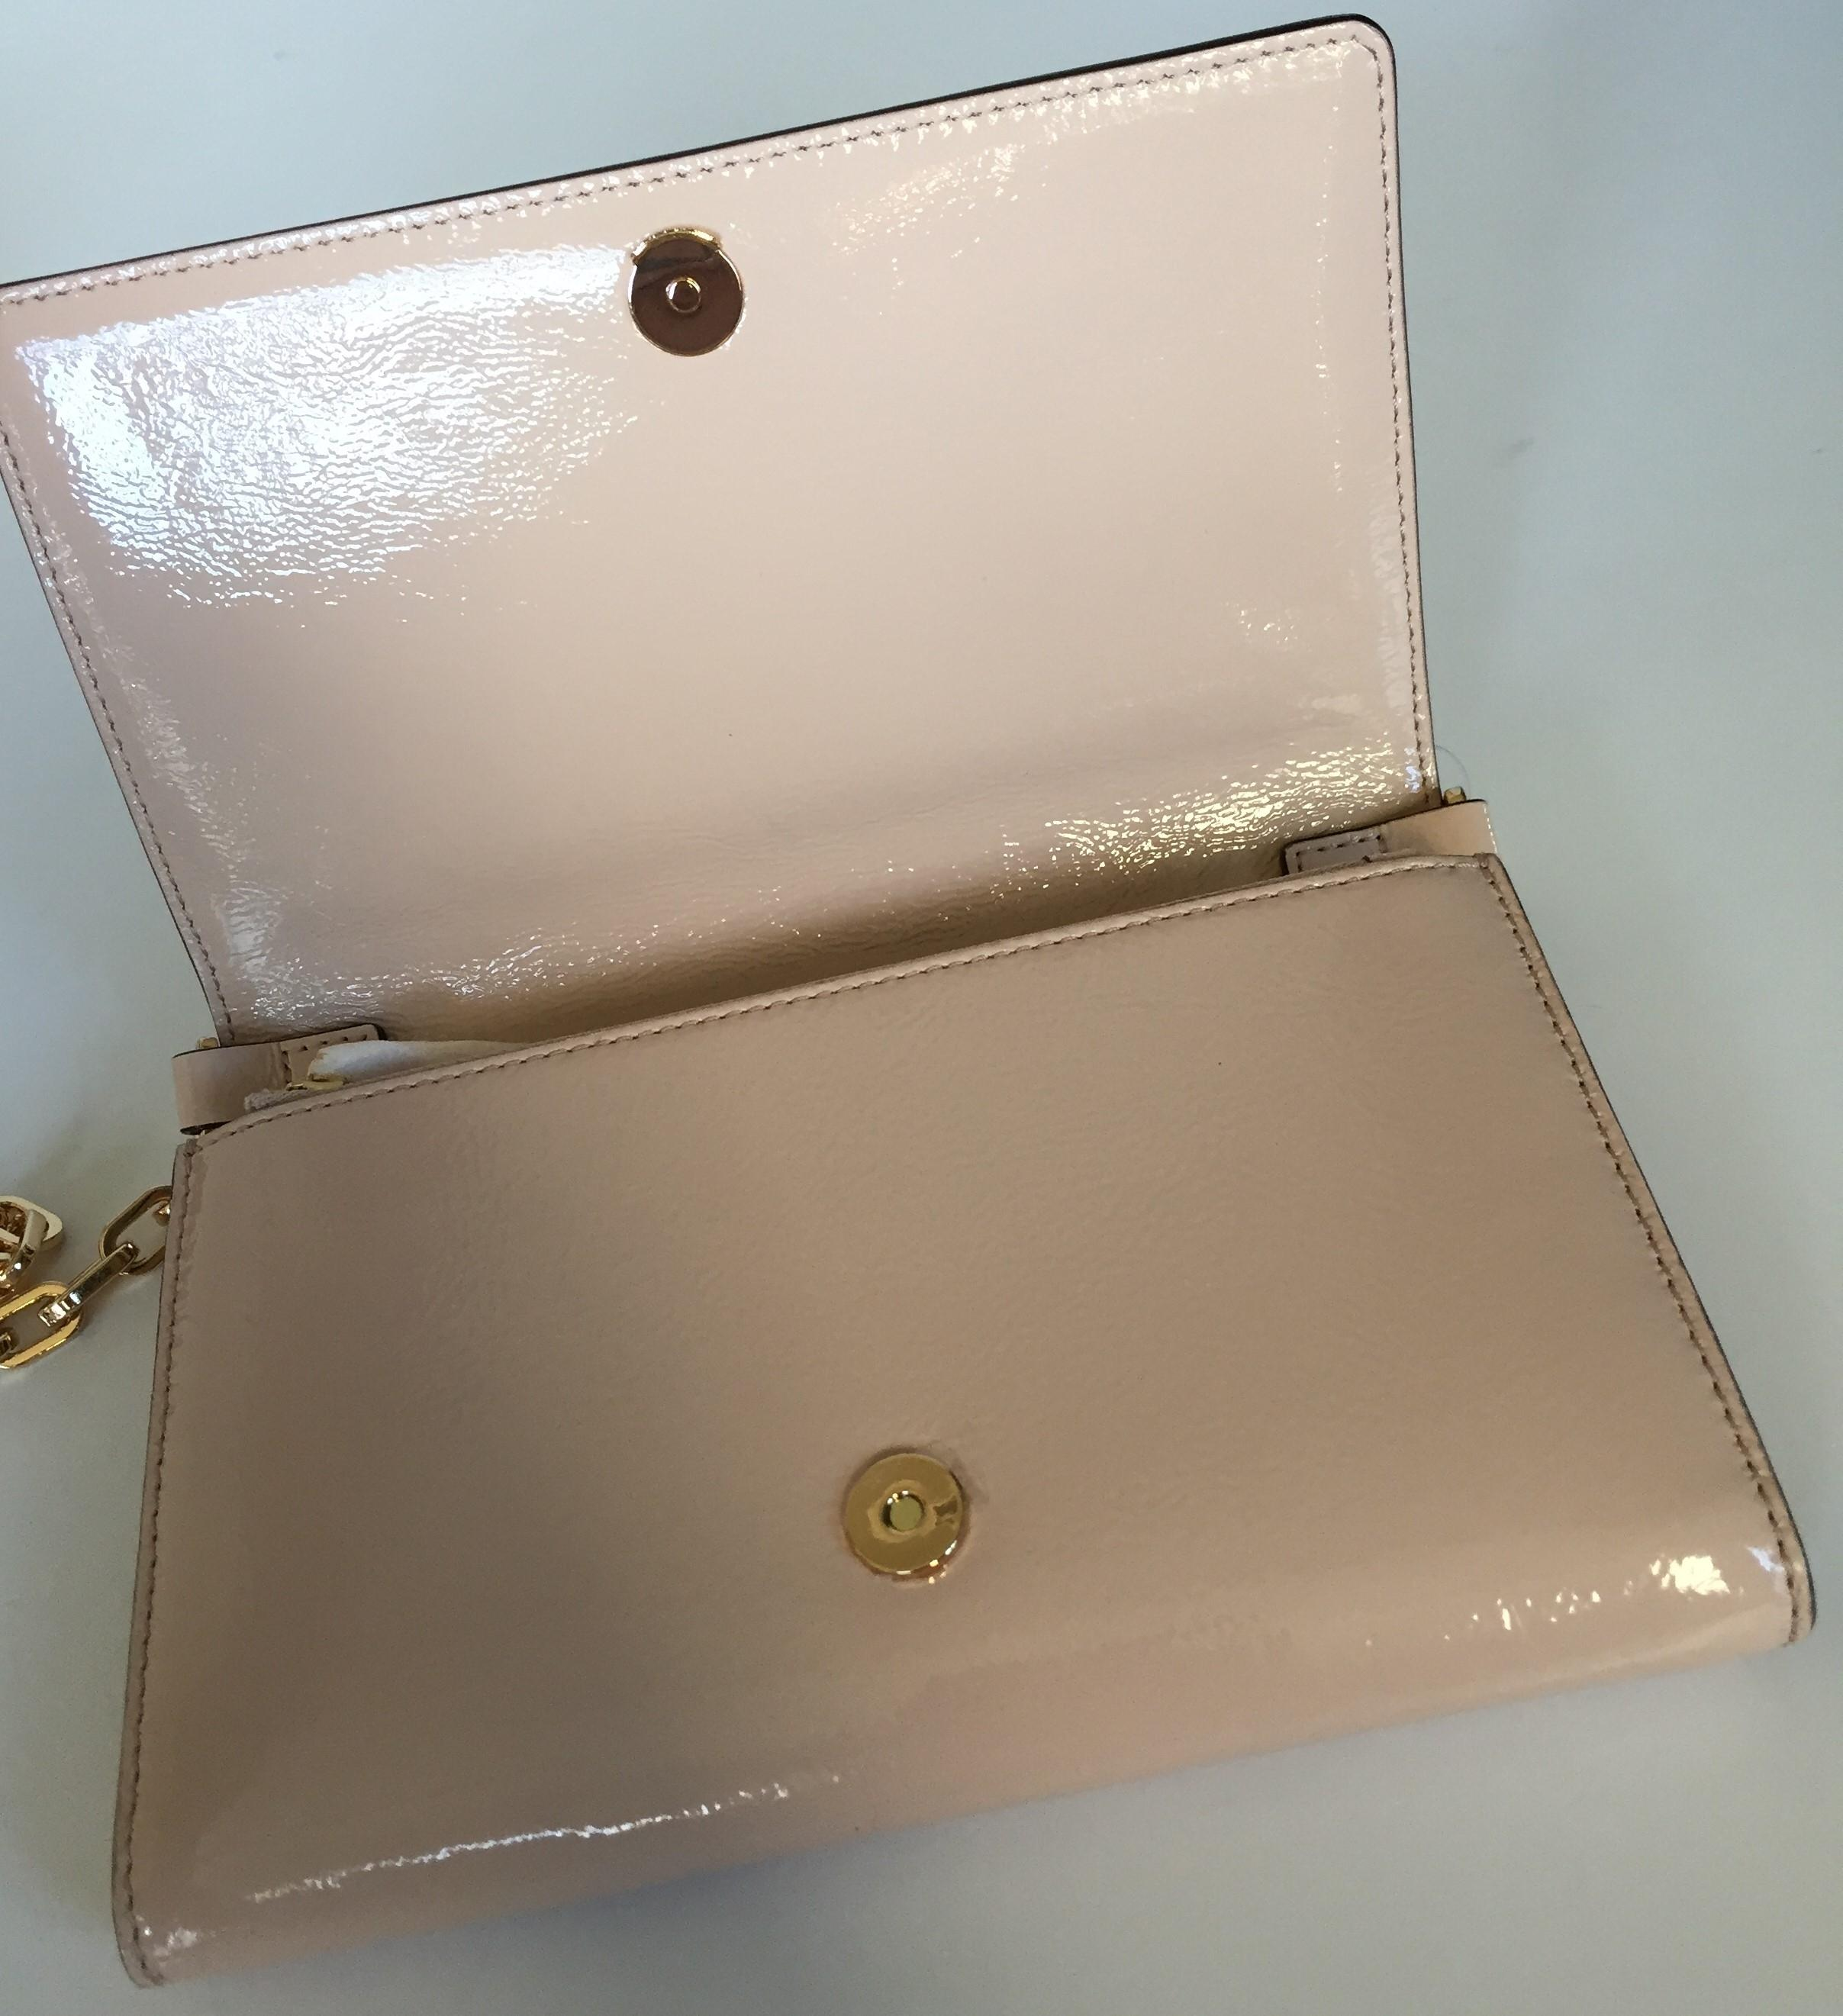 23b71d6b8f5d ... discount code for tory burch charlie flat wallet light oak patent leather  cross body bag tradesy